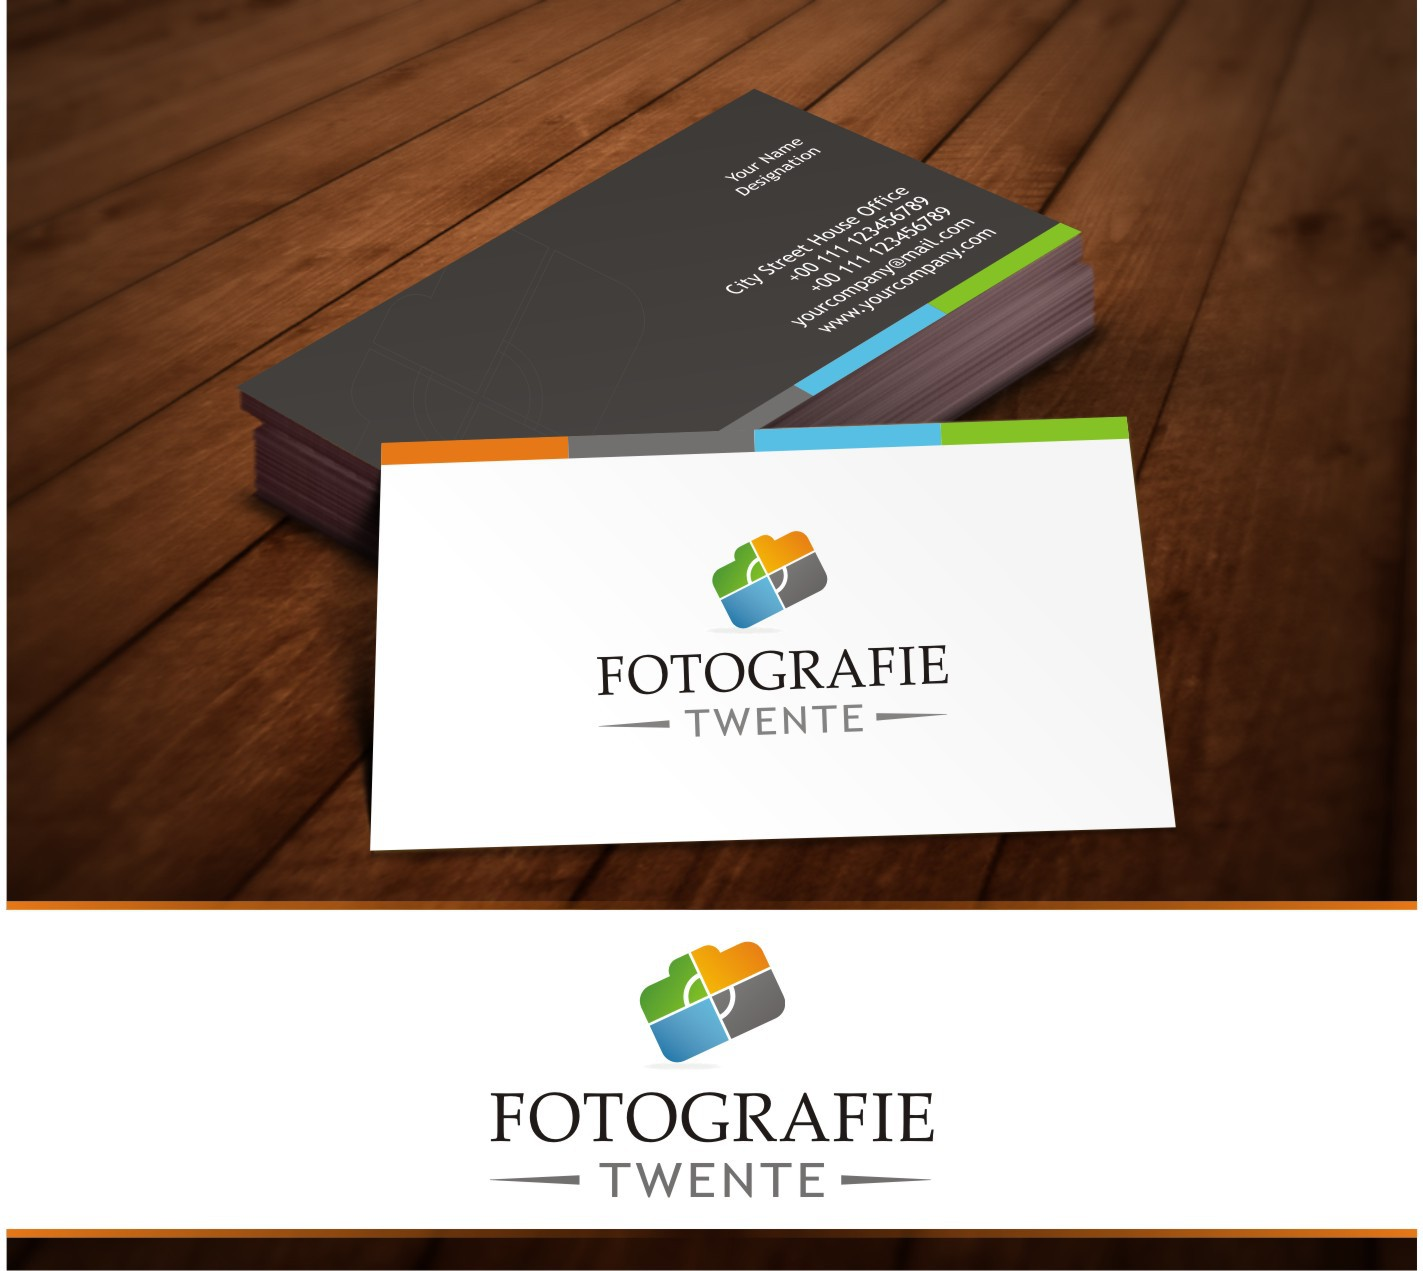 New logo wanted for Fotografie Twente